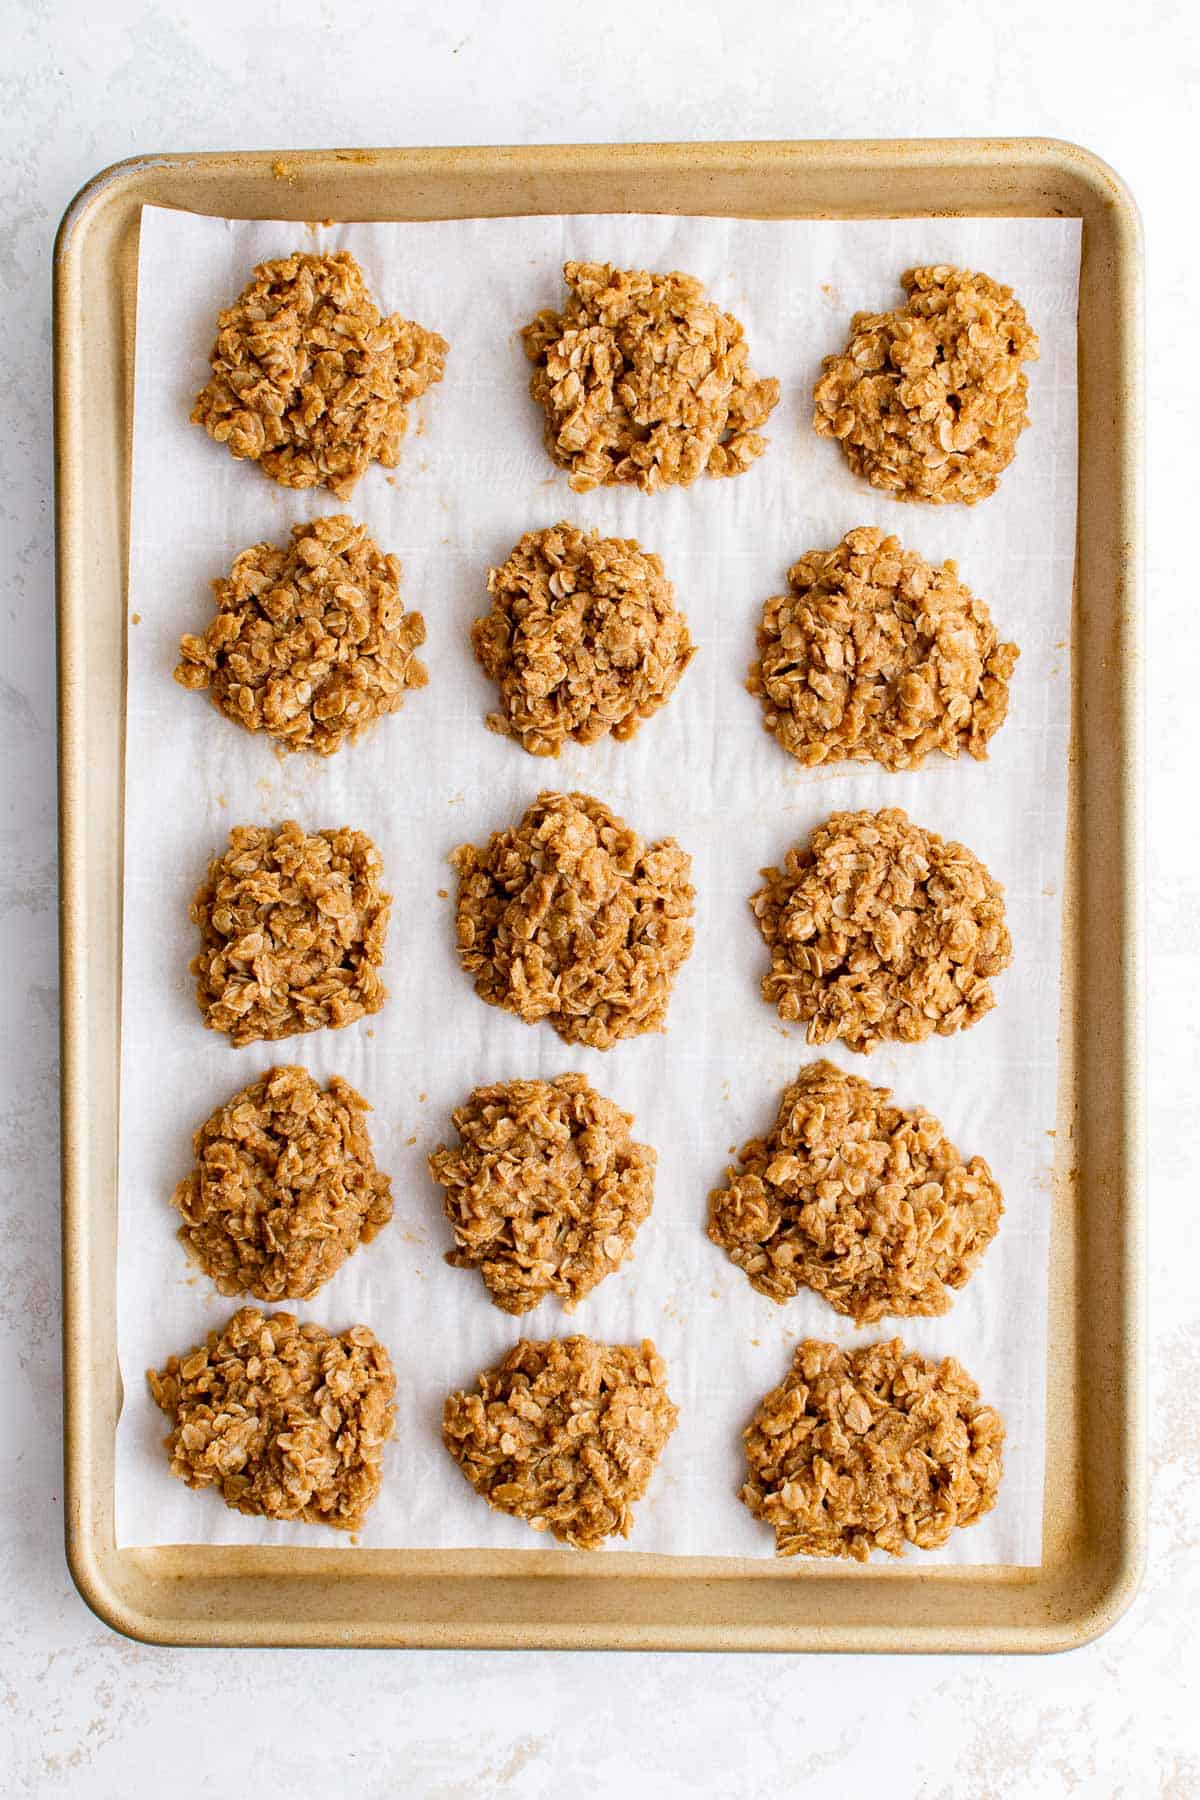 a baking sheet lined with parchment paper full of peanut butter no bake cookies